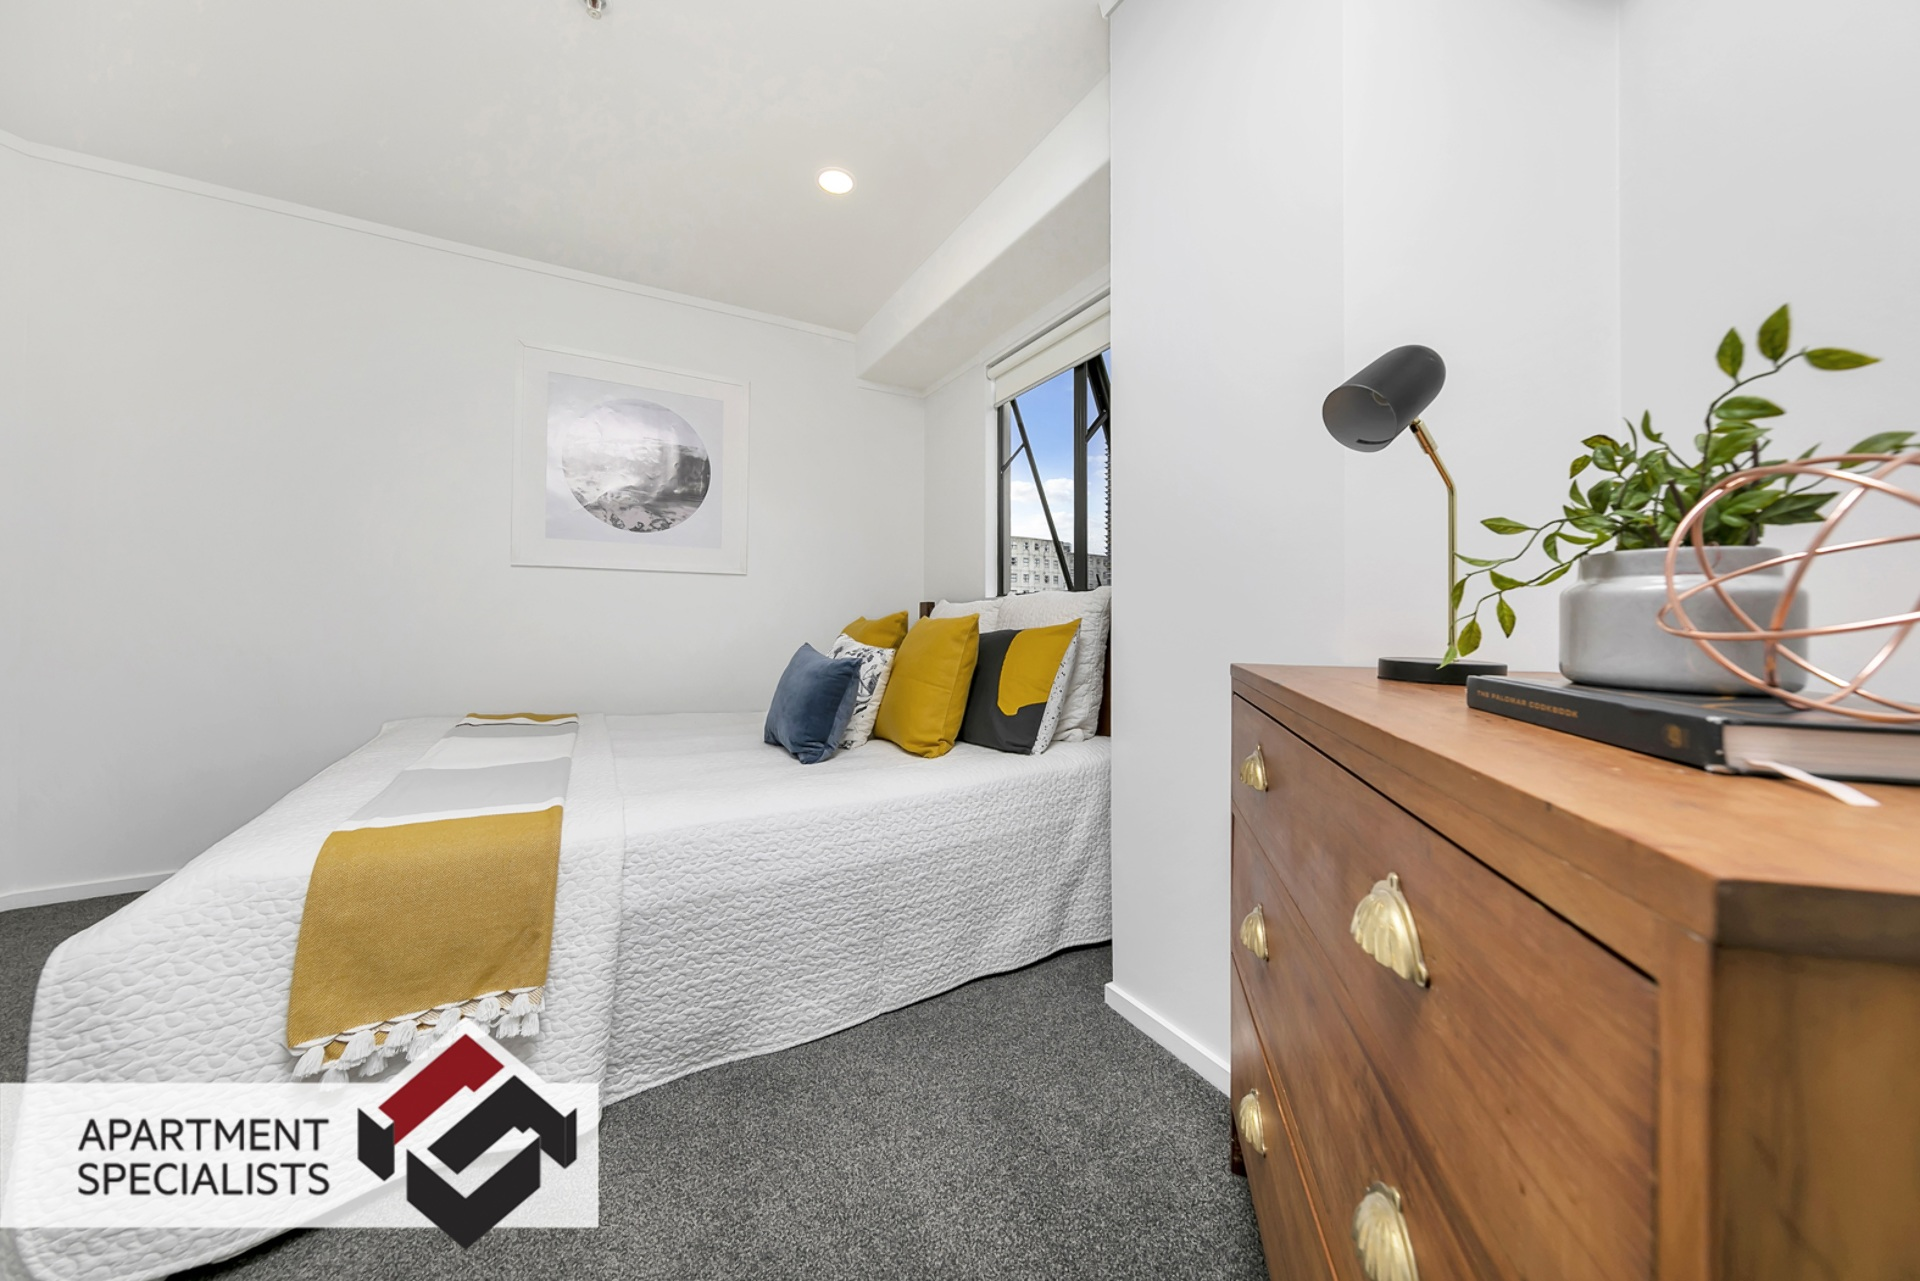 6 | 6 Whitaker Place, City Centre | Apartment Specialists